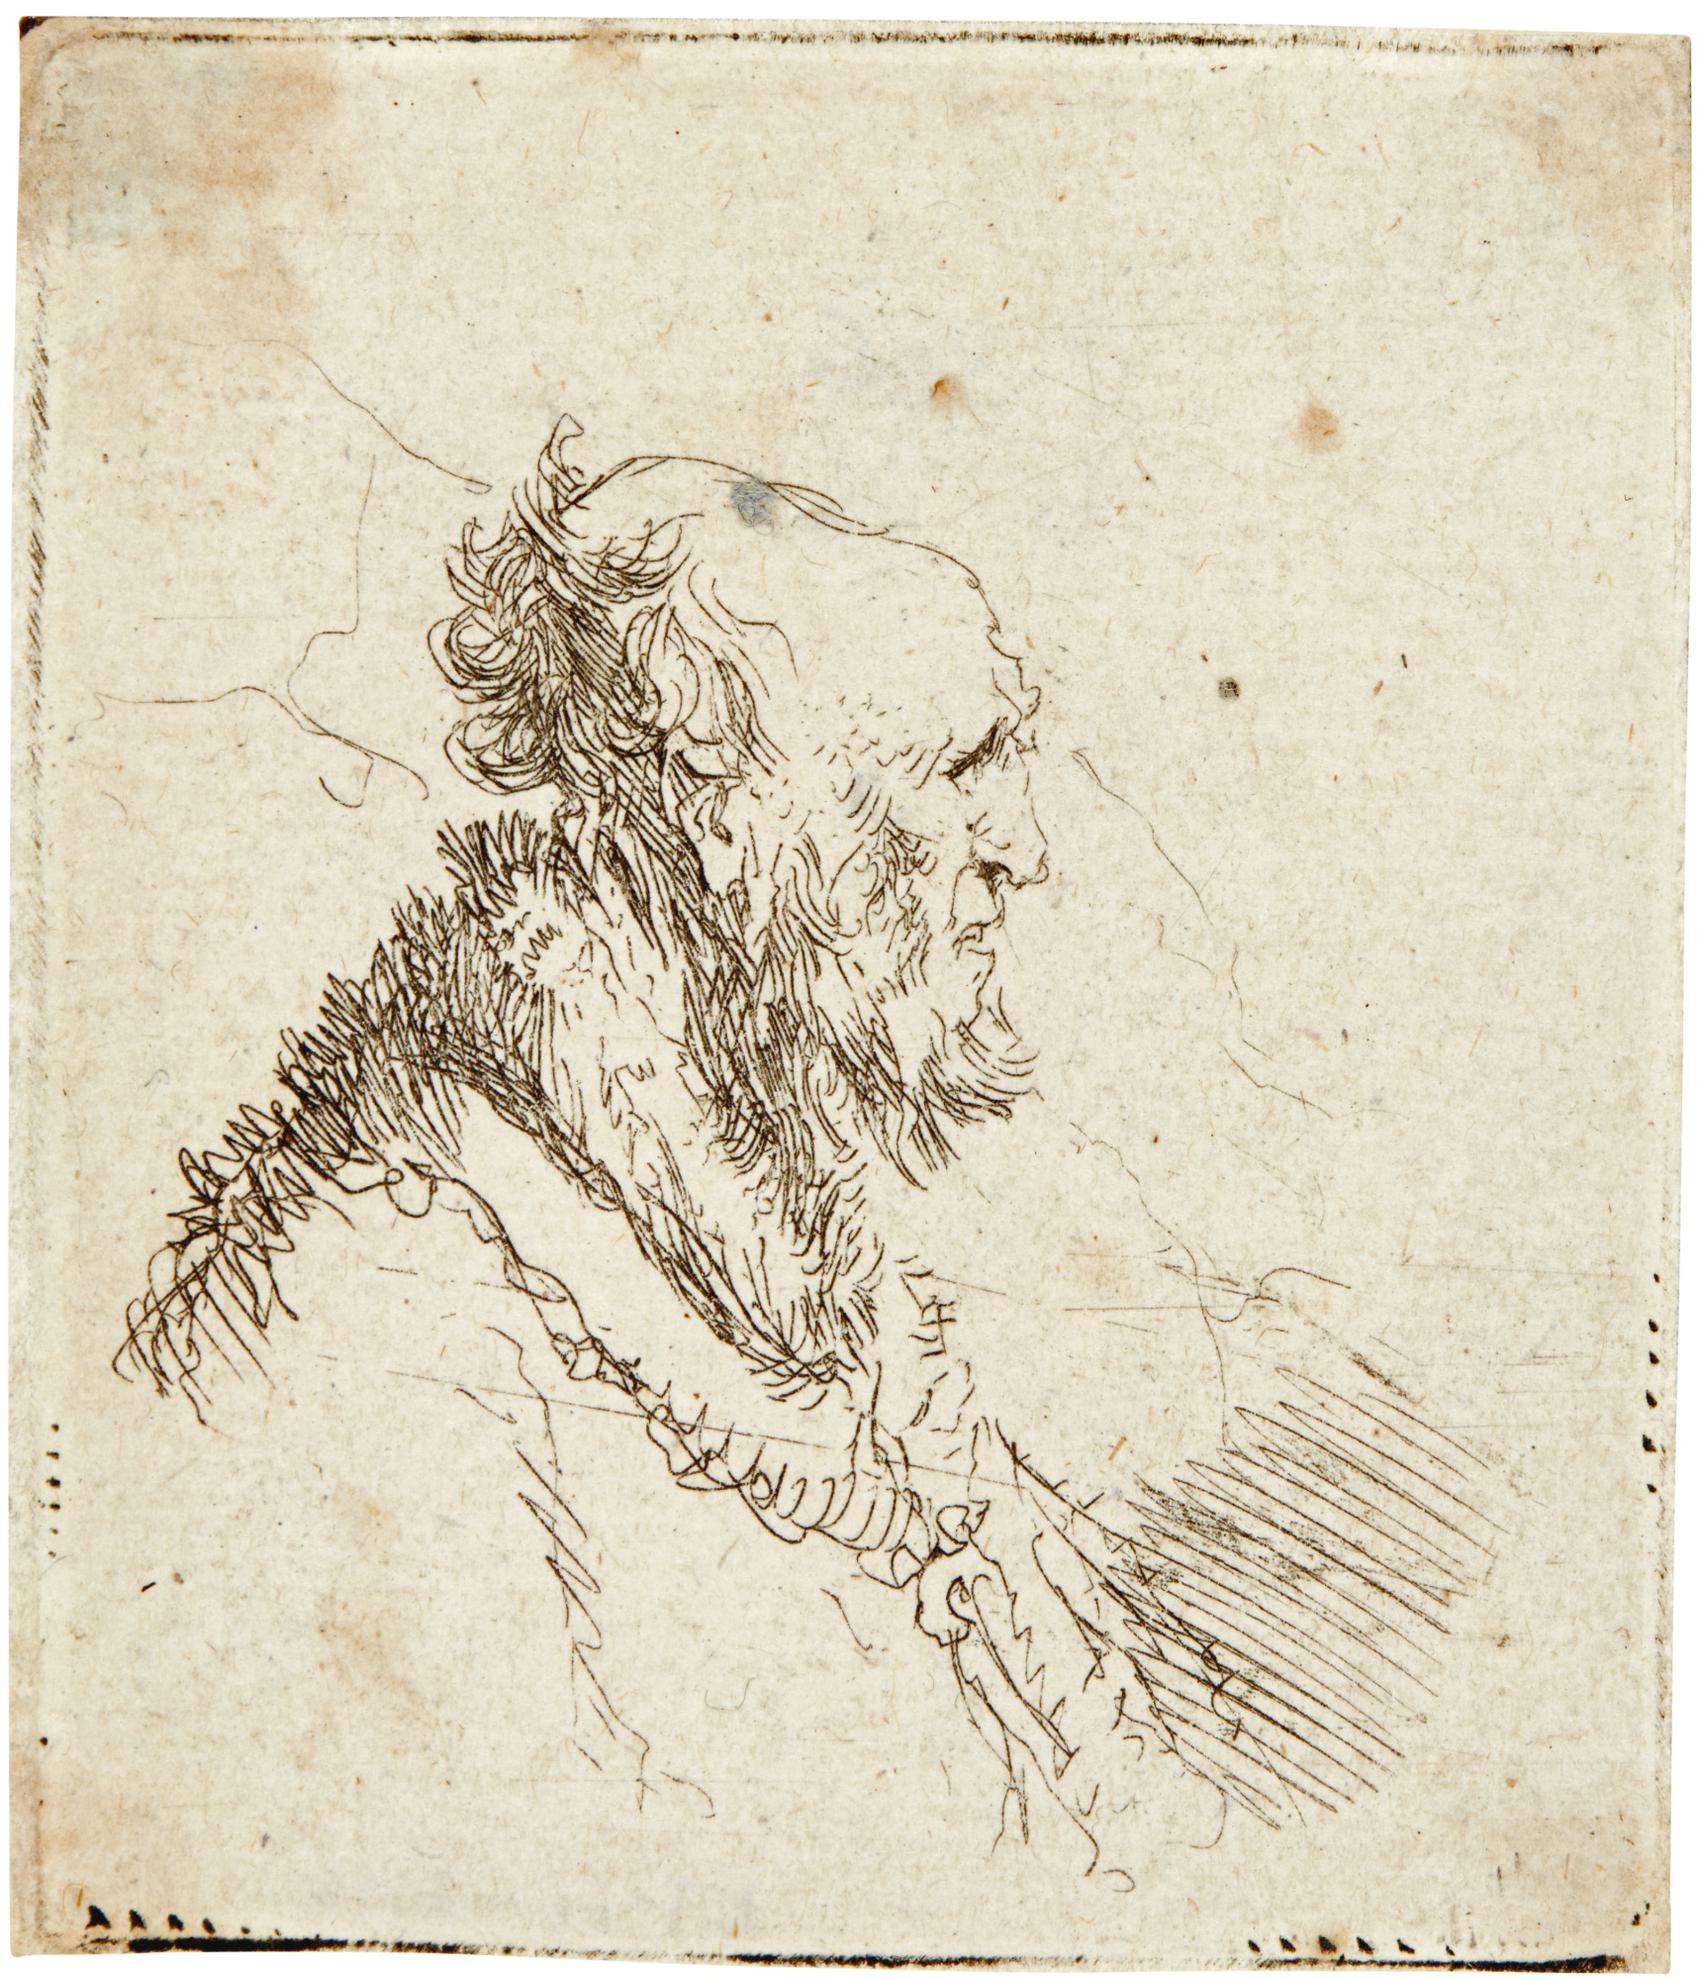 Rembrandt van Rijn-Bald Old Man With Short Beard, In Profile Right (B., Holl. 306; New Holl. 147; H. 136)-1635